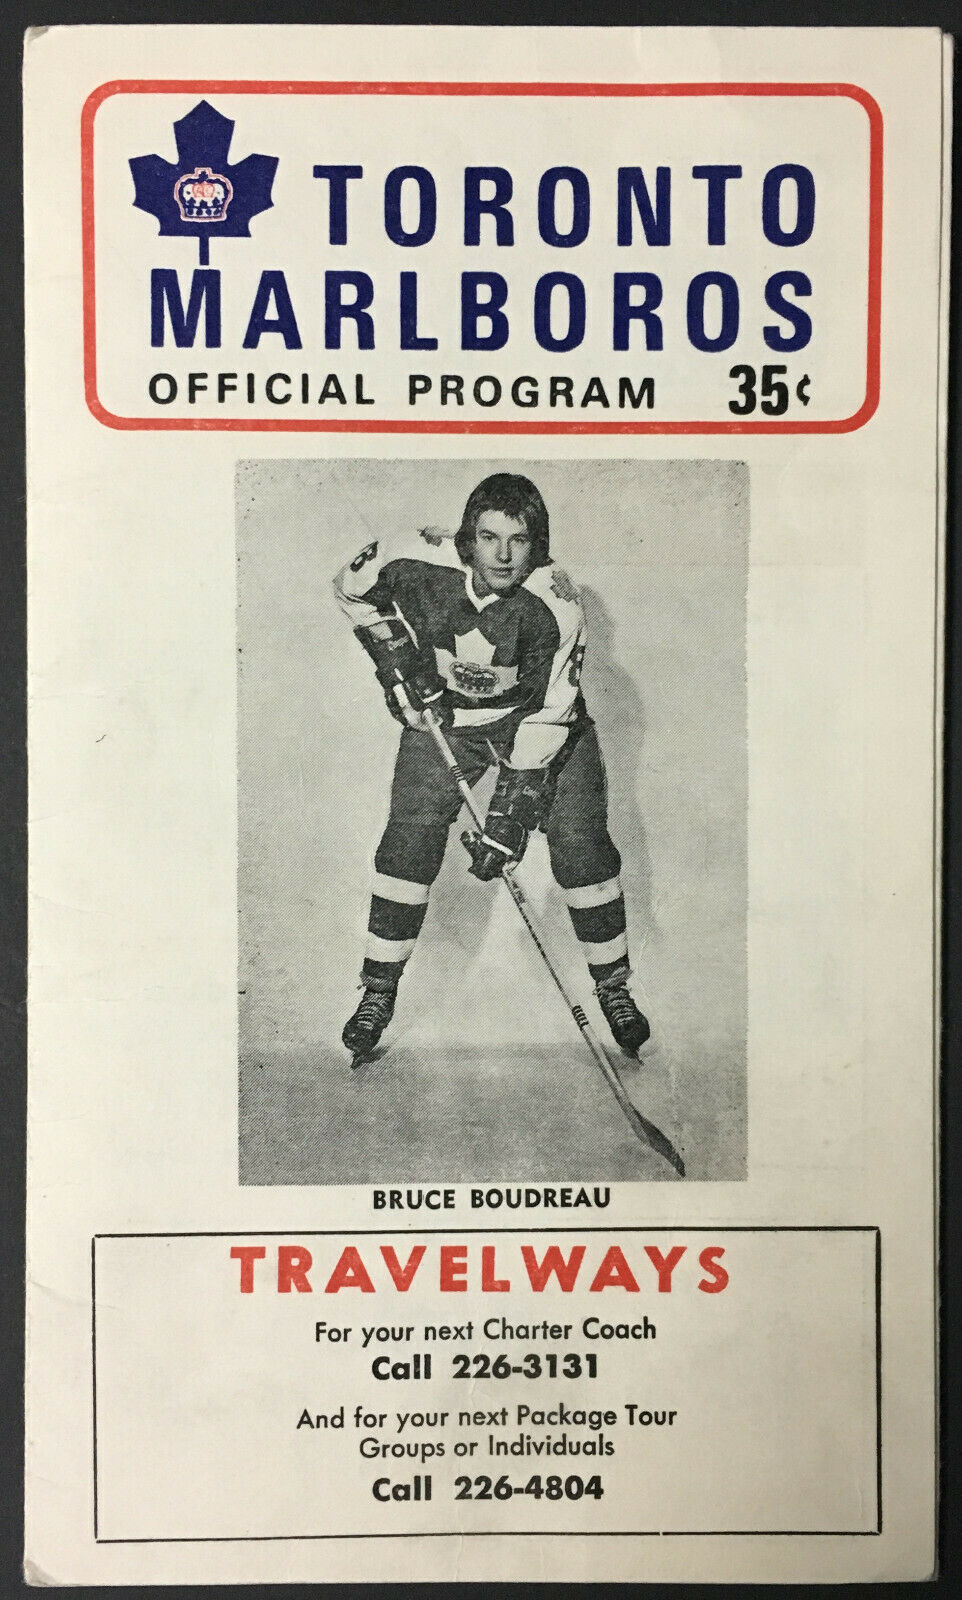 1973 Maple Leaf Gardens OHA Hockey Program Toronto Marlboros vs Ottawa 67's